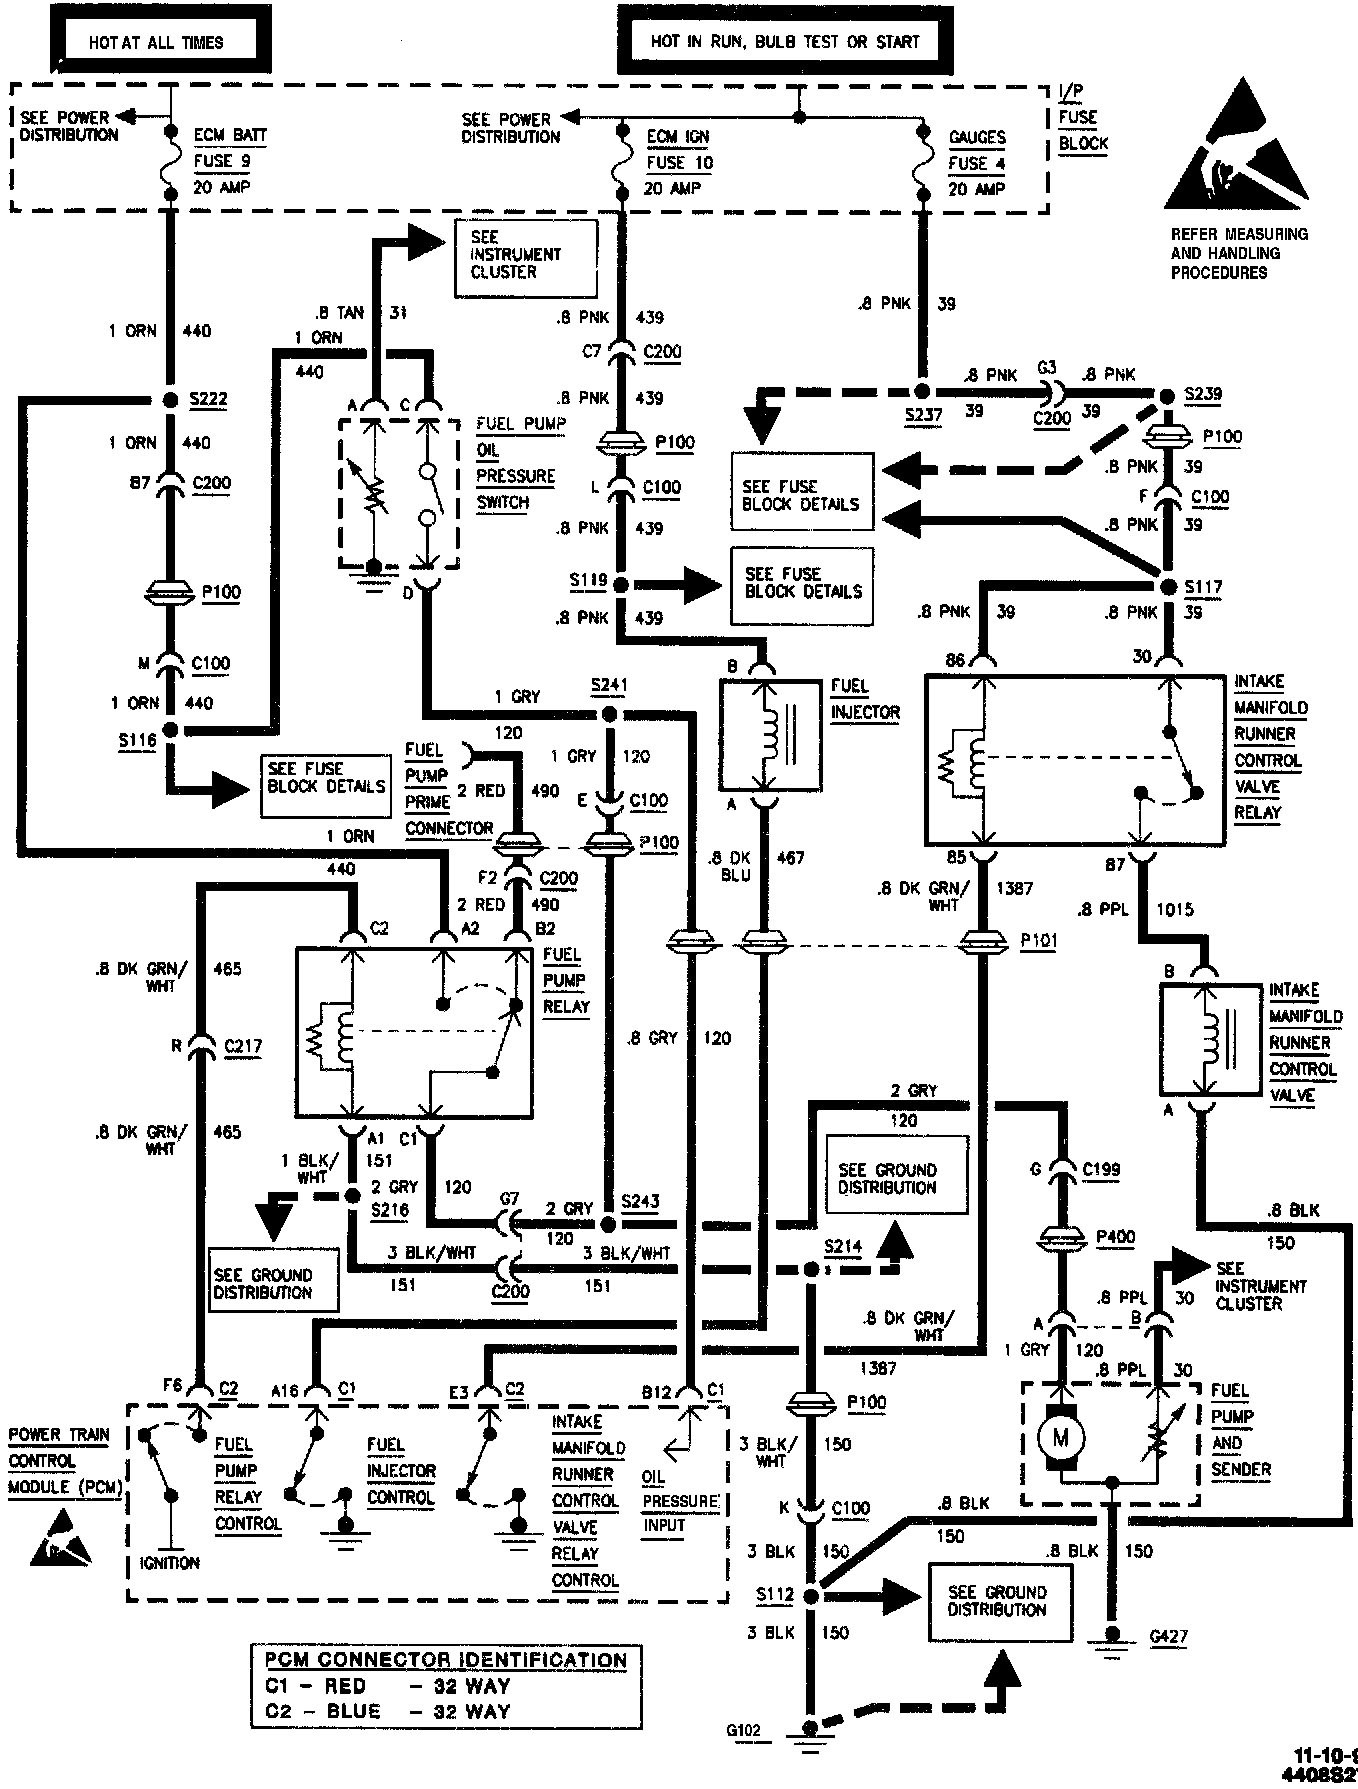 mack truck fuel pump wiring diagrams mack truck fuel system wiring diagram mack radio wiring - auto electrical wiring diagram #2